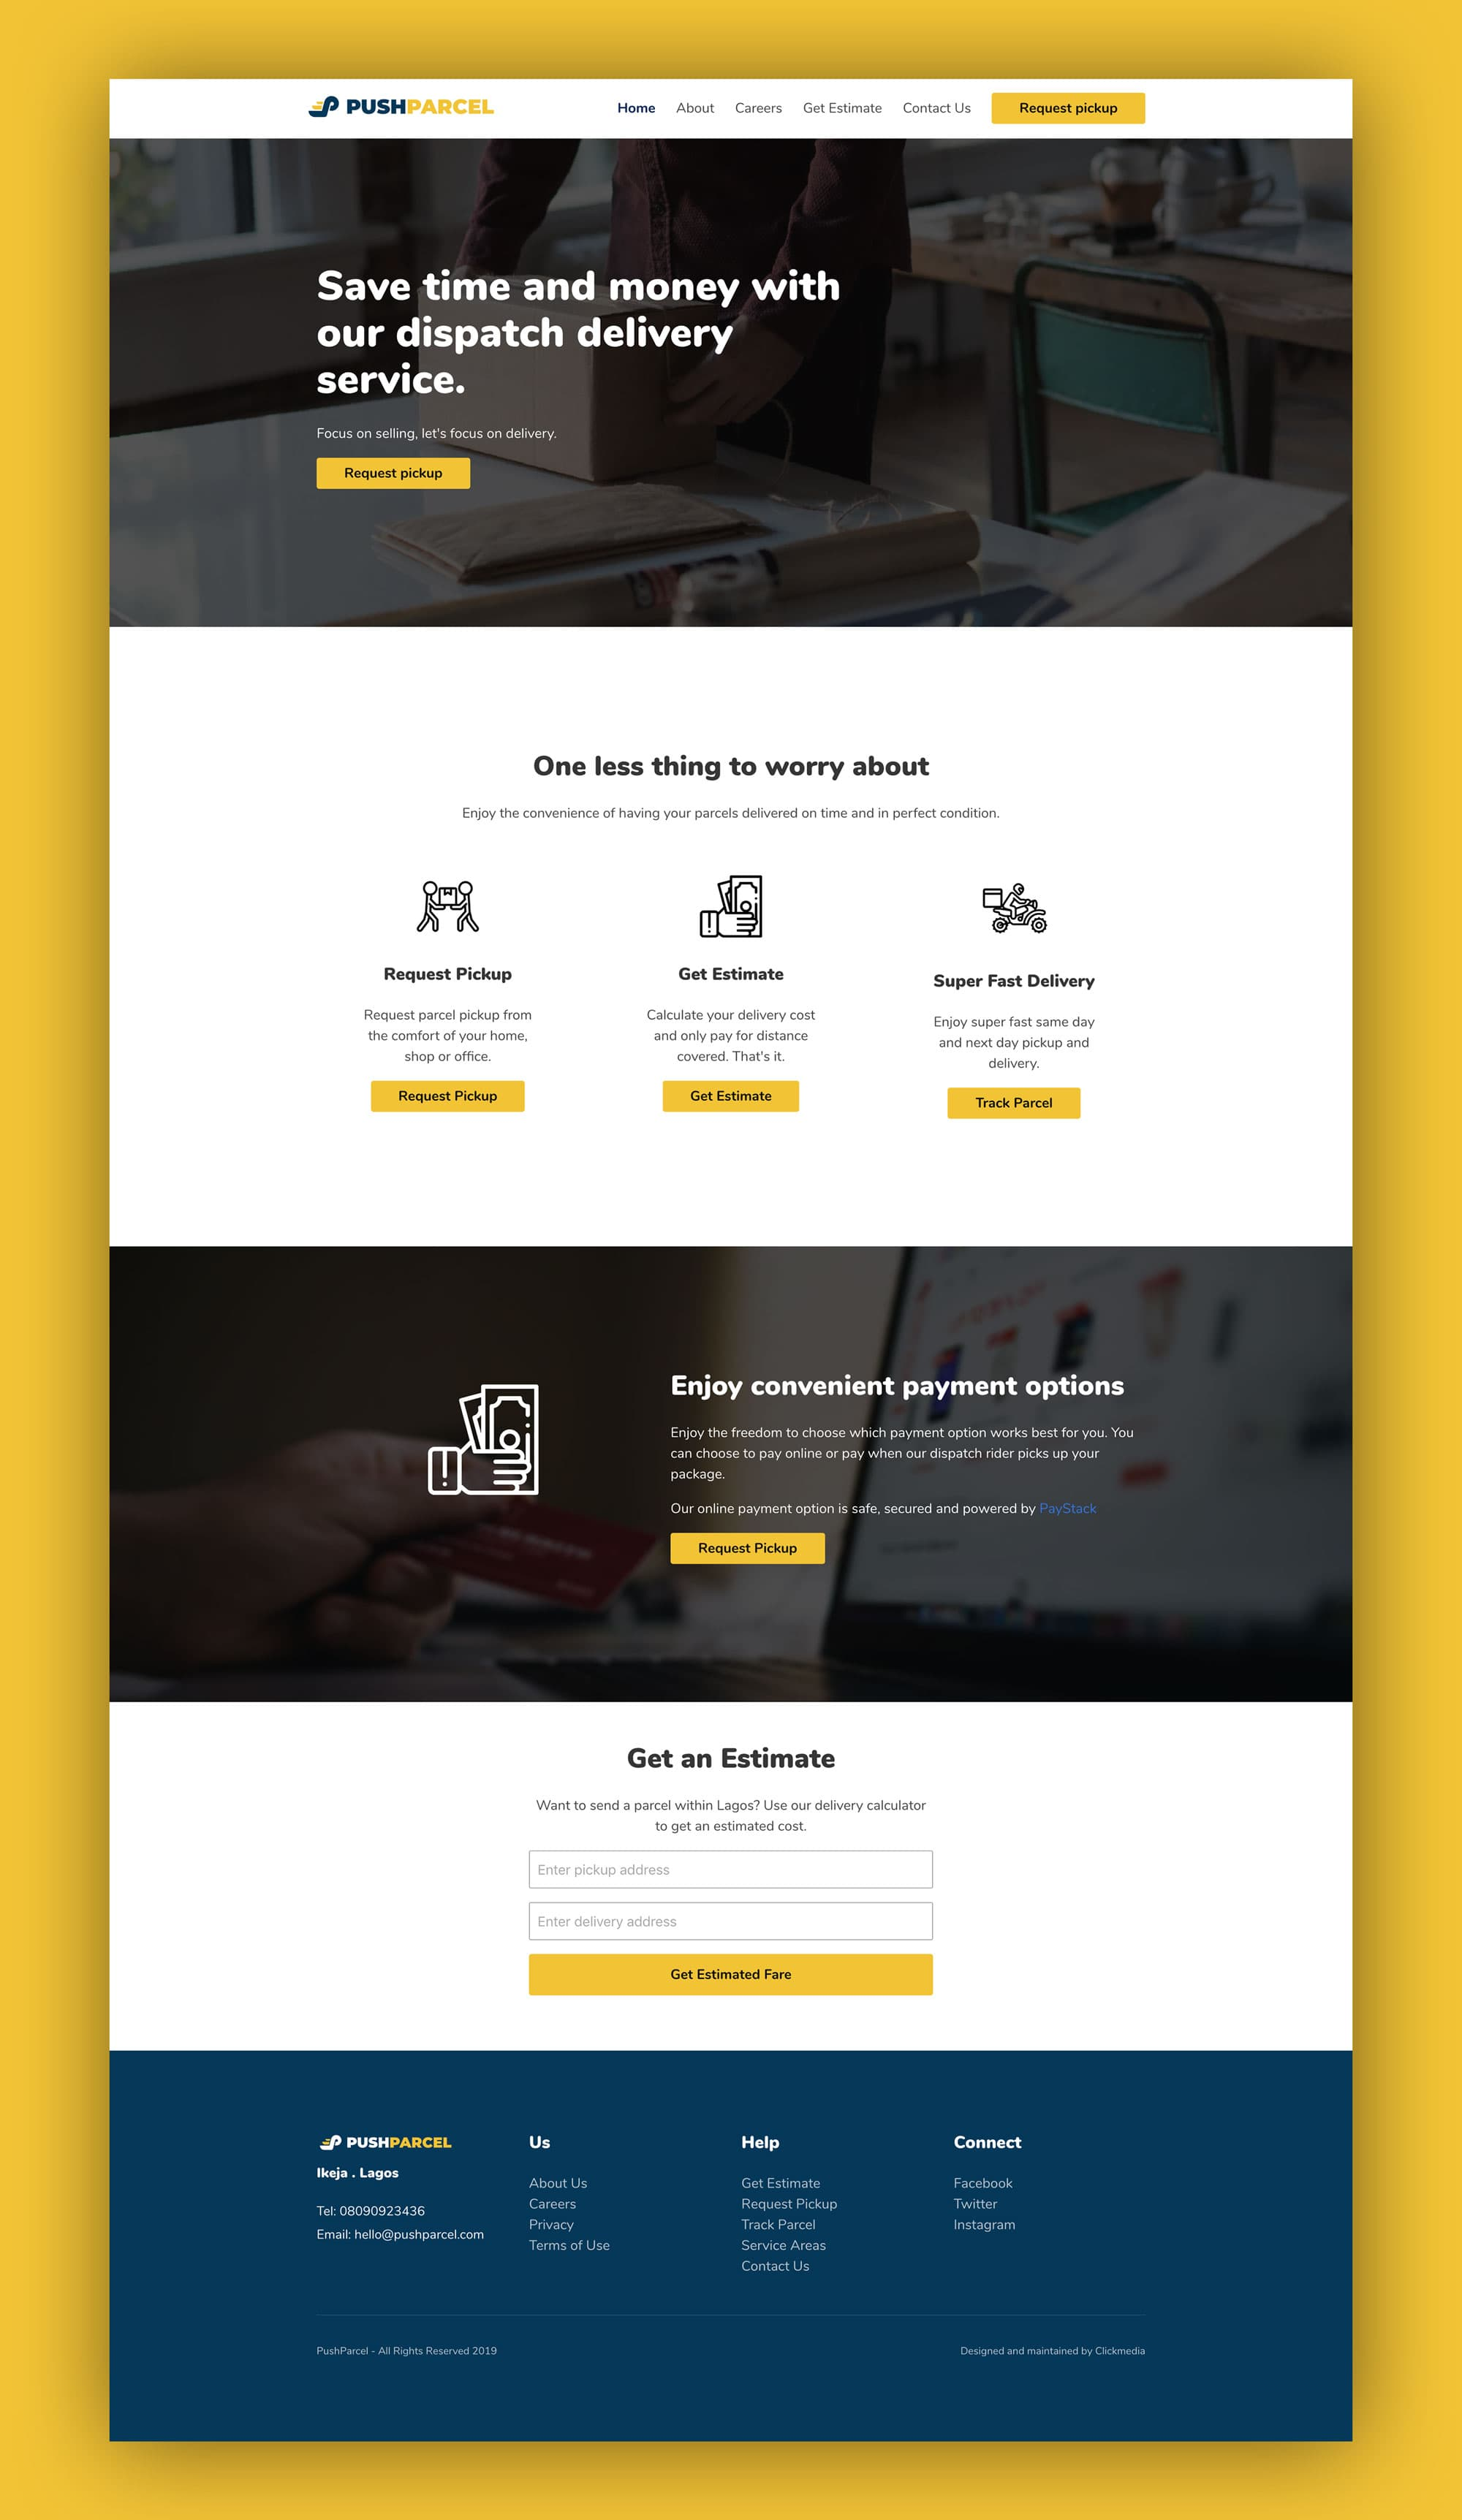 PushParcel Website Design